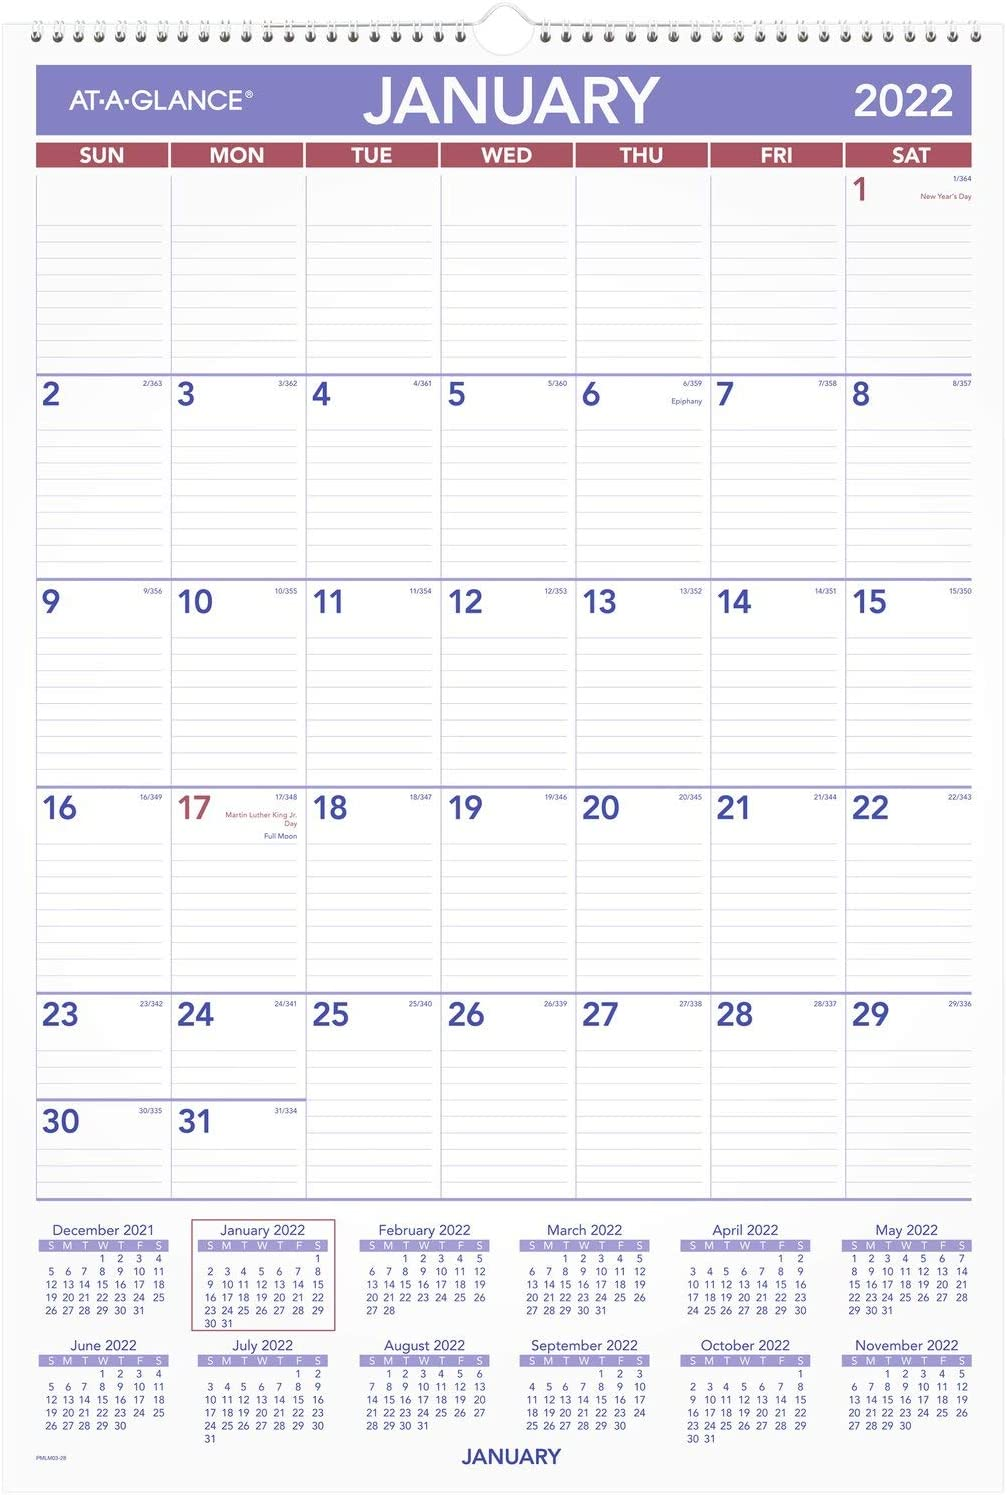 Safety and trust 2022 Louisville-Jefferson County Mall Erasable Calendar Dry Erase Planner by Wall AT-A-GLANCE 1